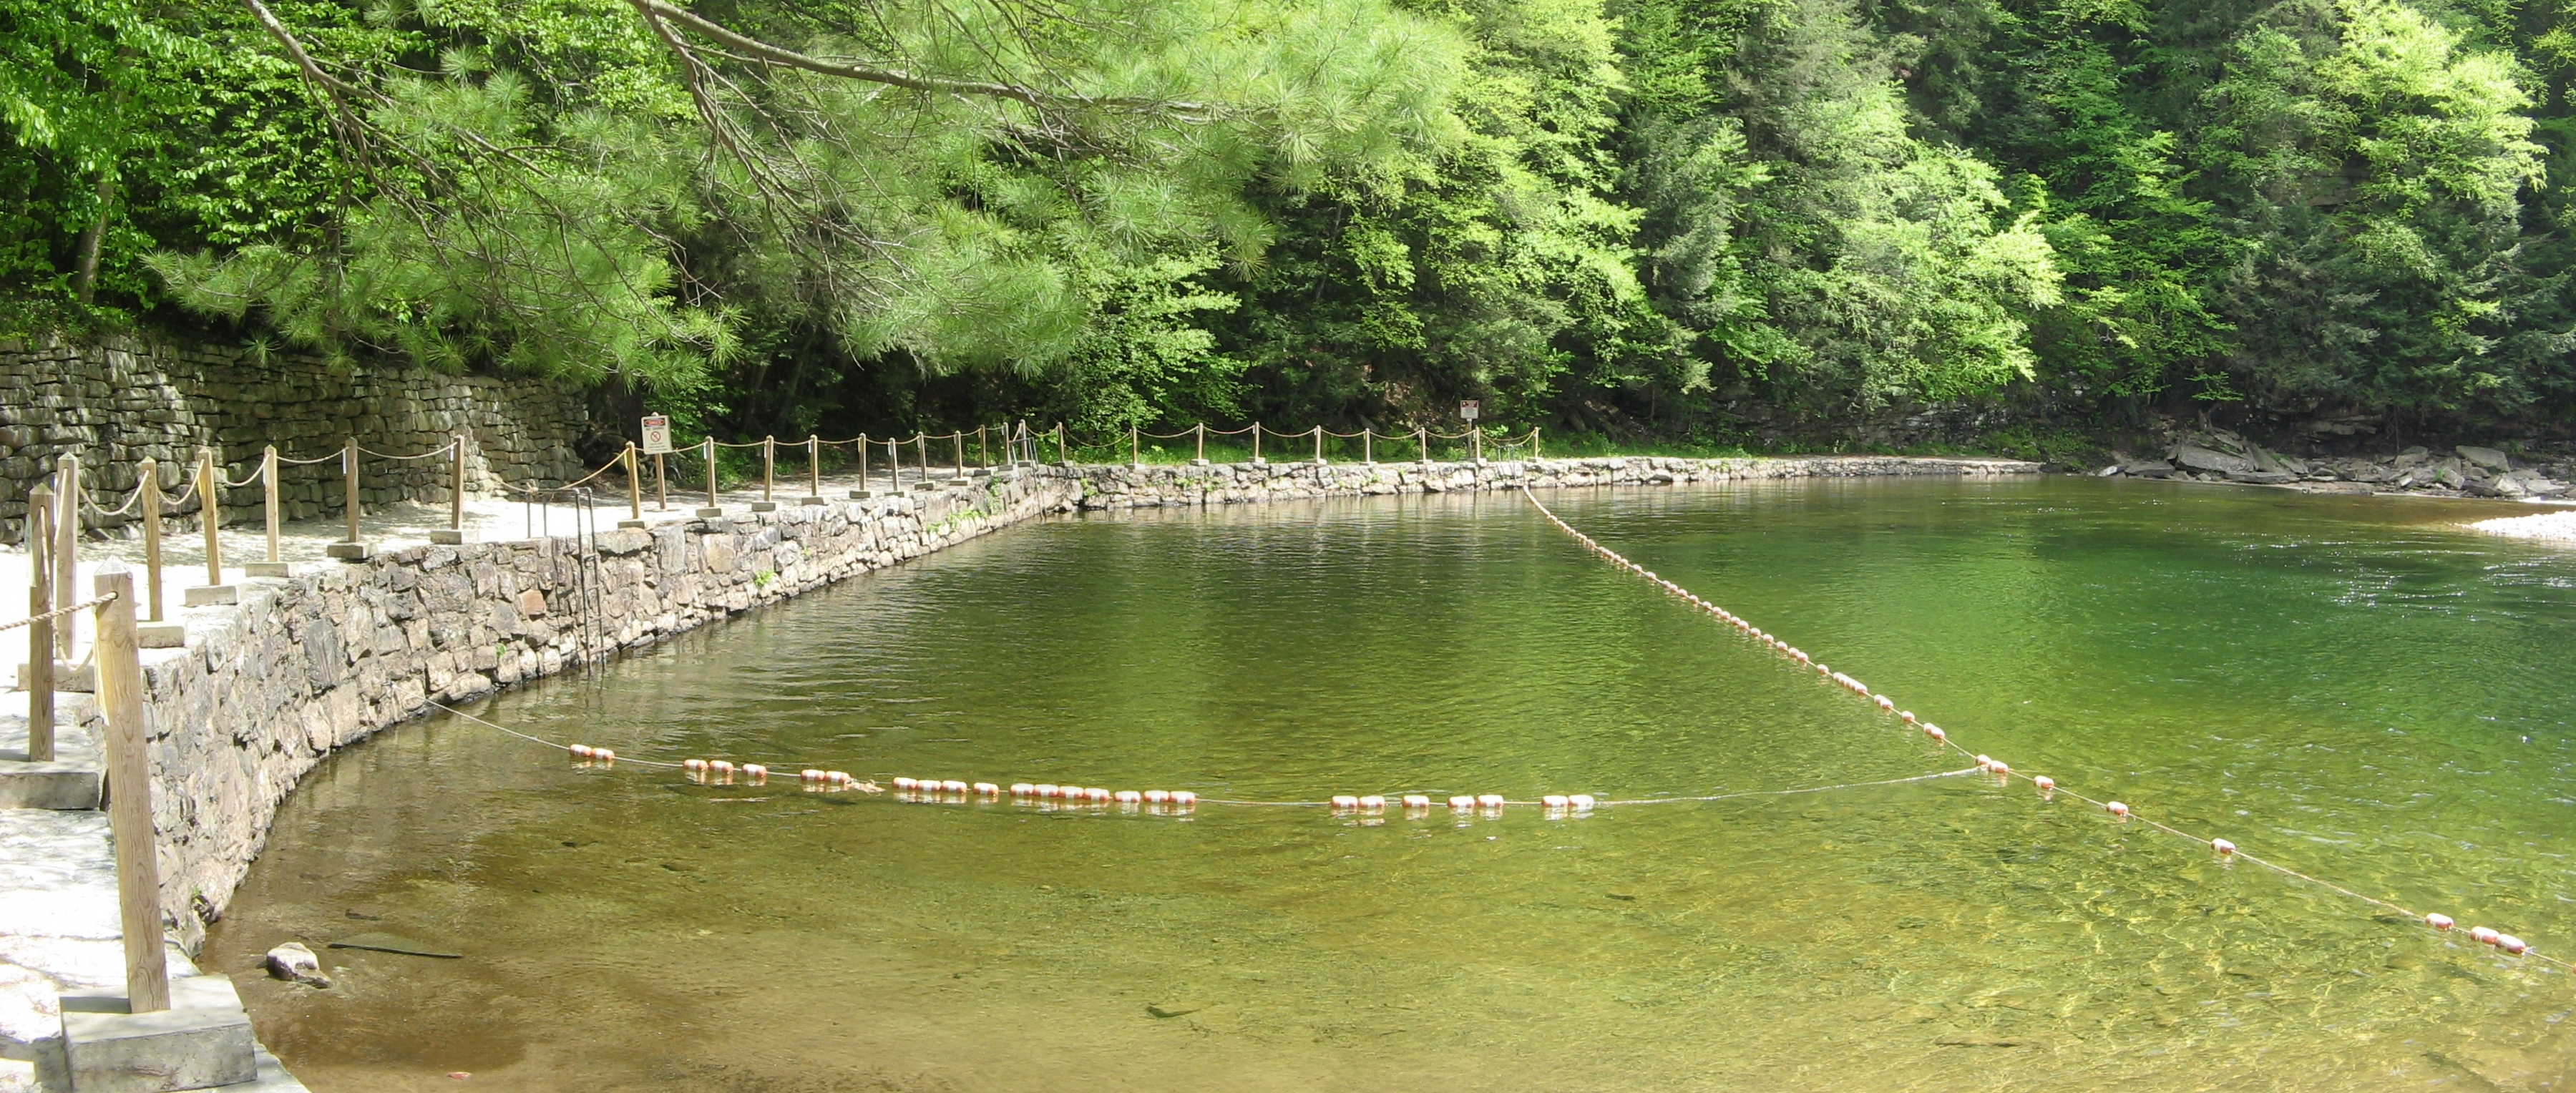 File:Worlds End State Park Swimming Area jpg - Wikimedia Commons